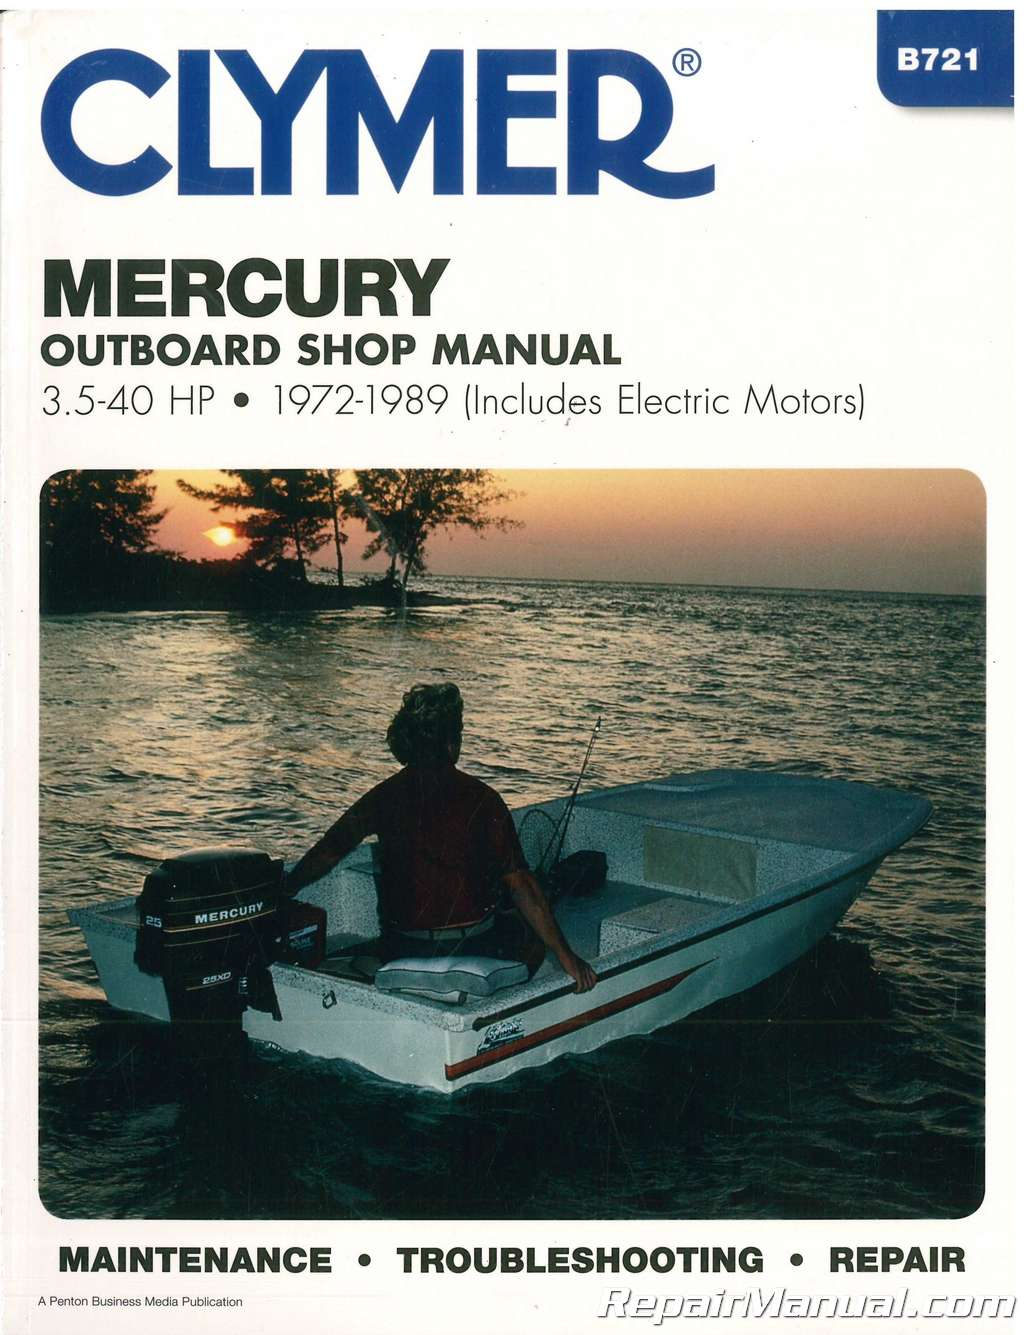 1972 1989 mercury 3 5 40hp clymer outboard boat engine repair manual rh repairmanual com Clymer Manuals XL75 Clymer Manuals Review